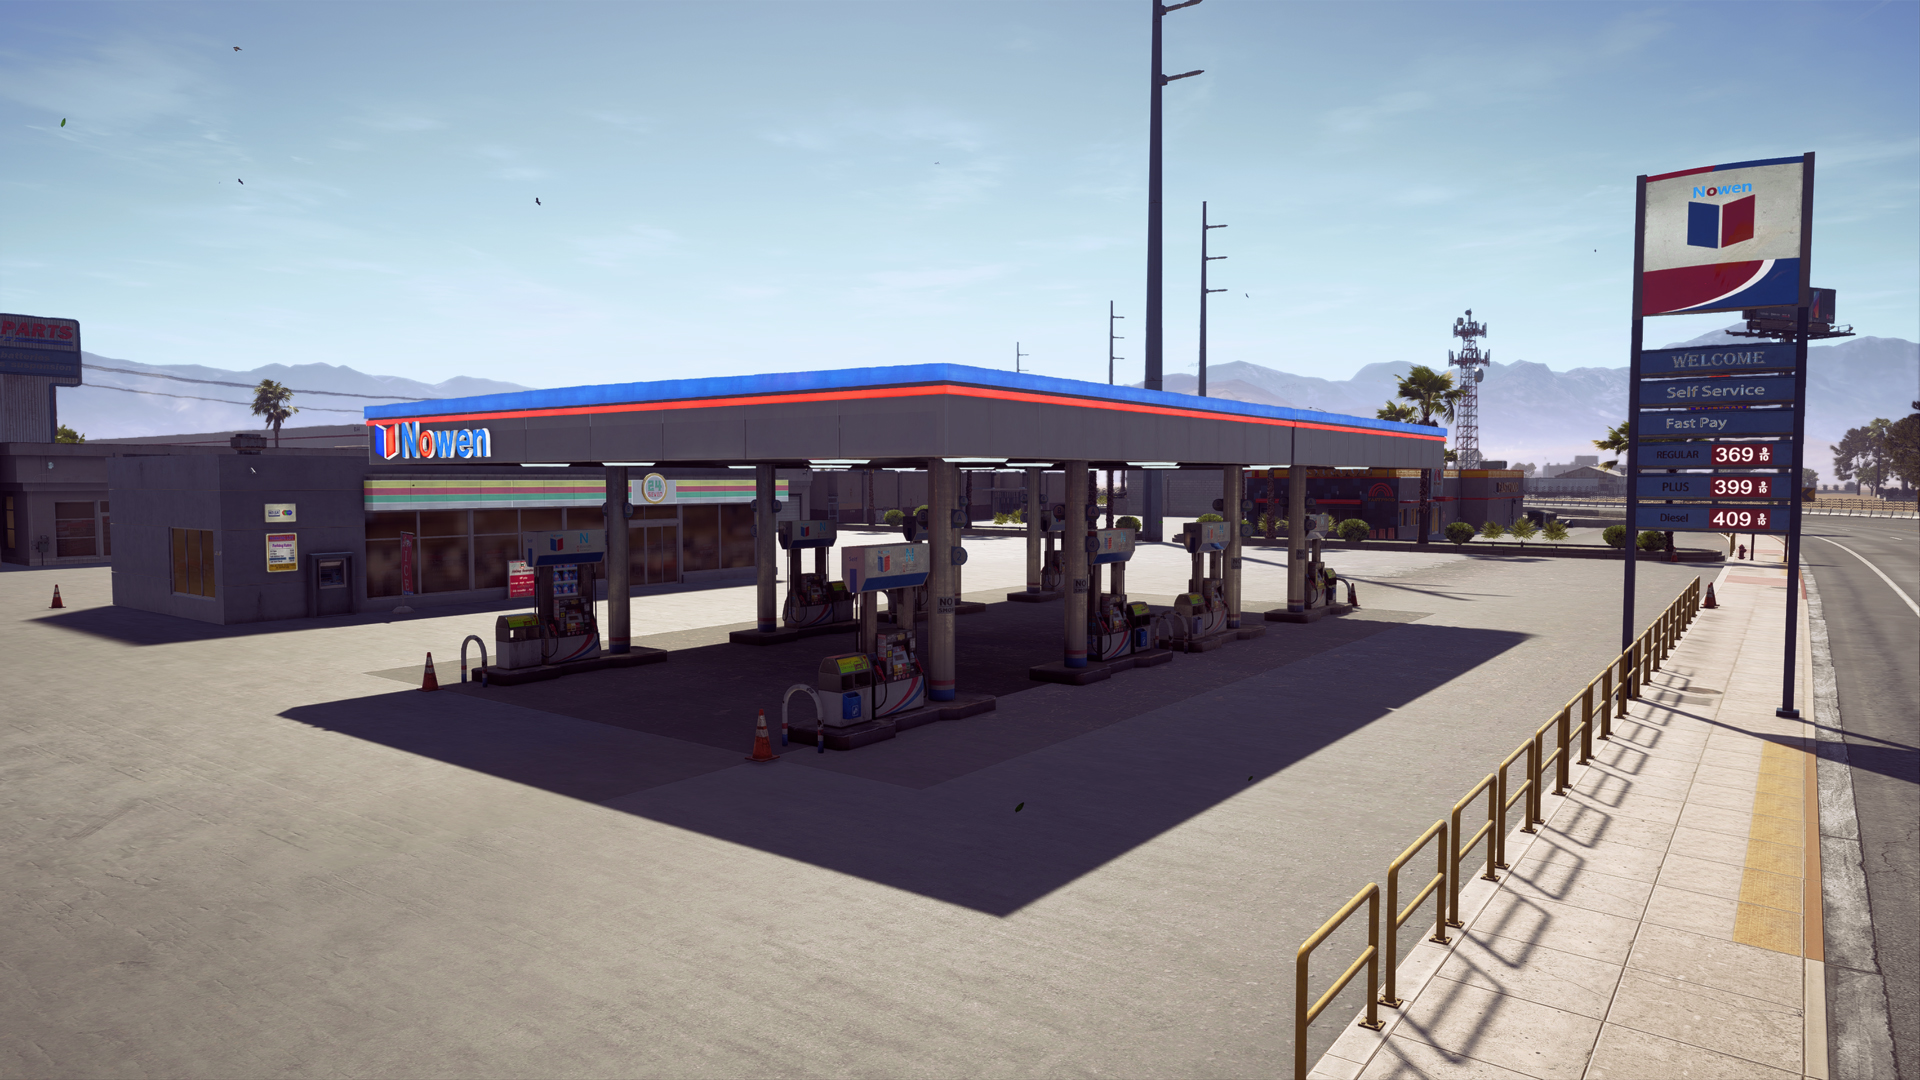 Lakeside Gas Station Need For Speed Wiki Fandom